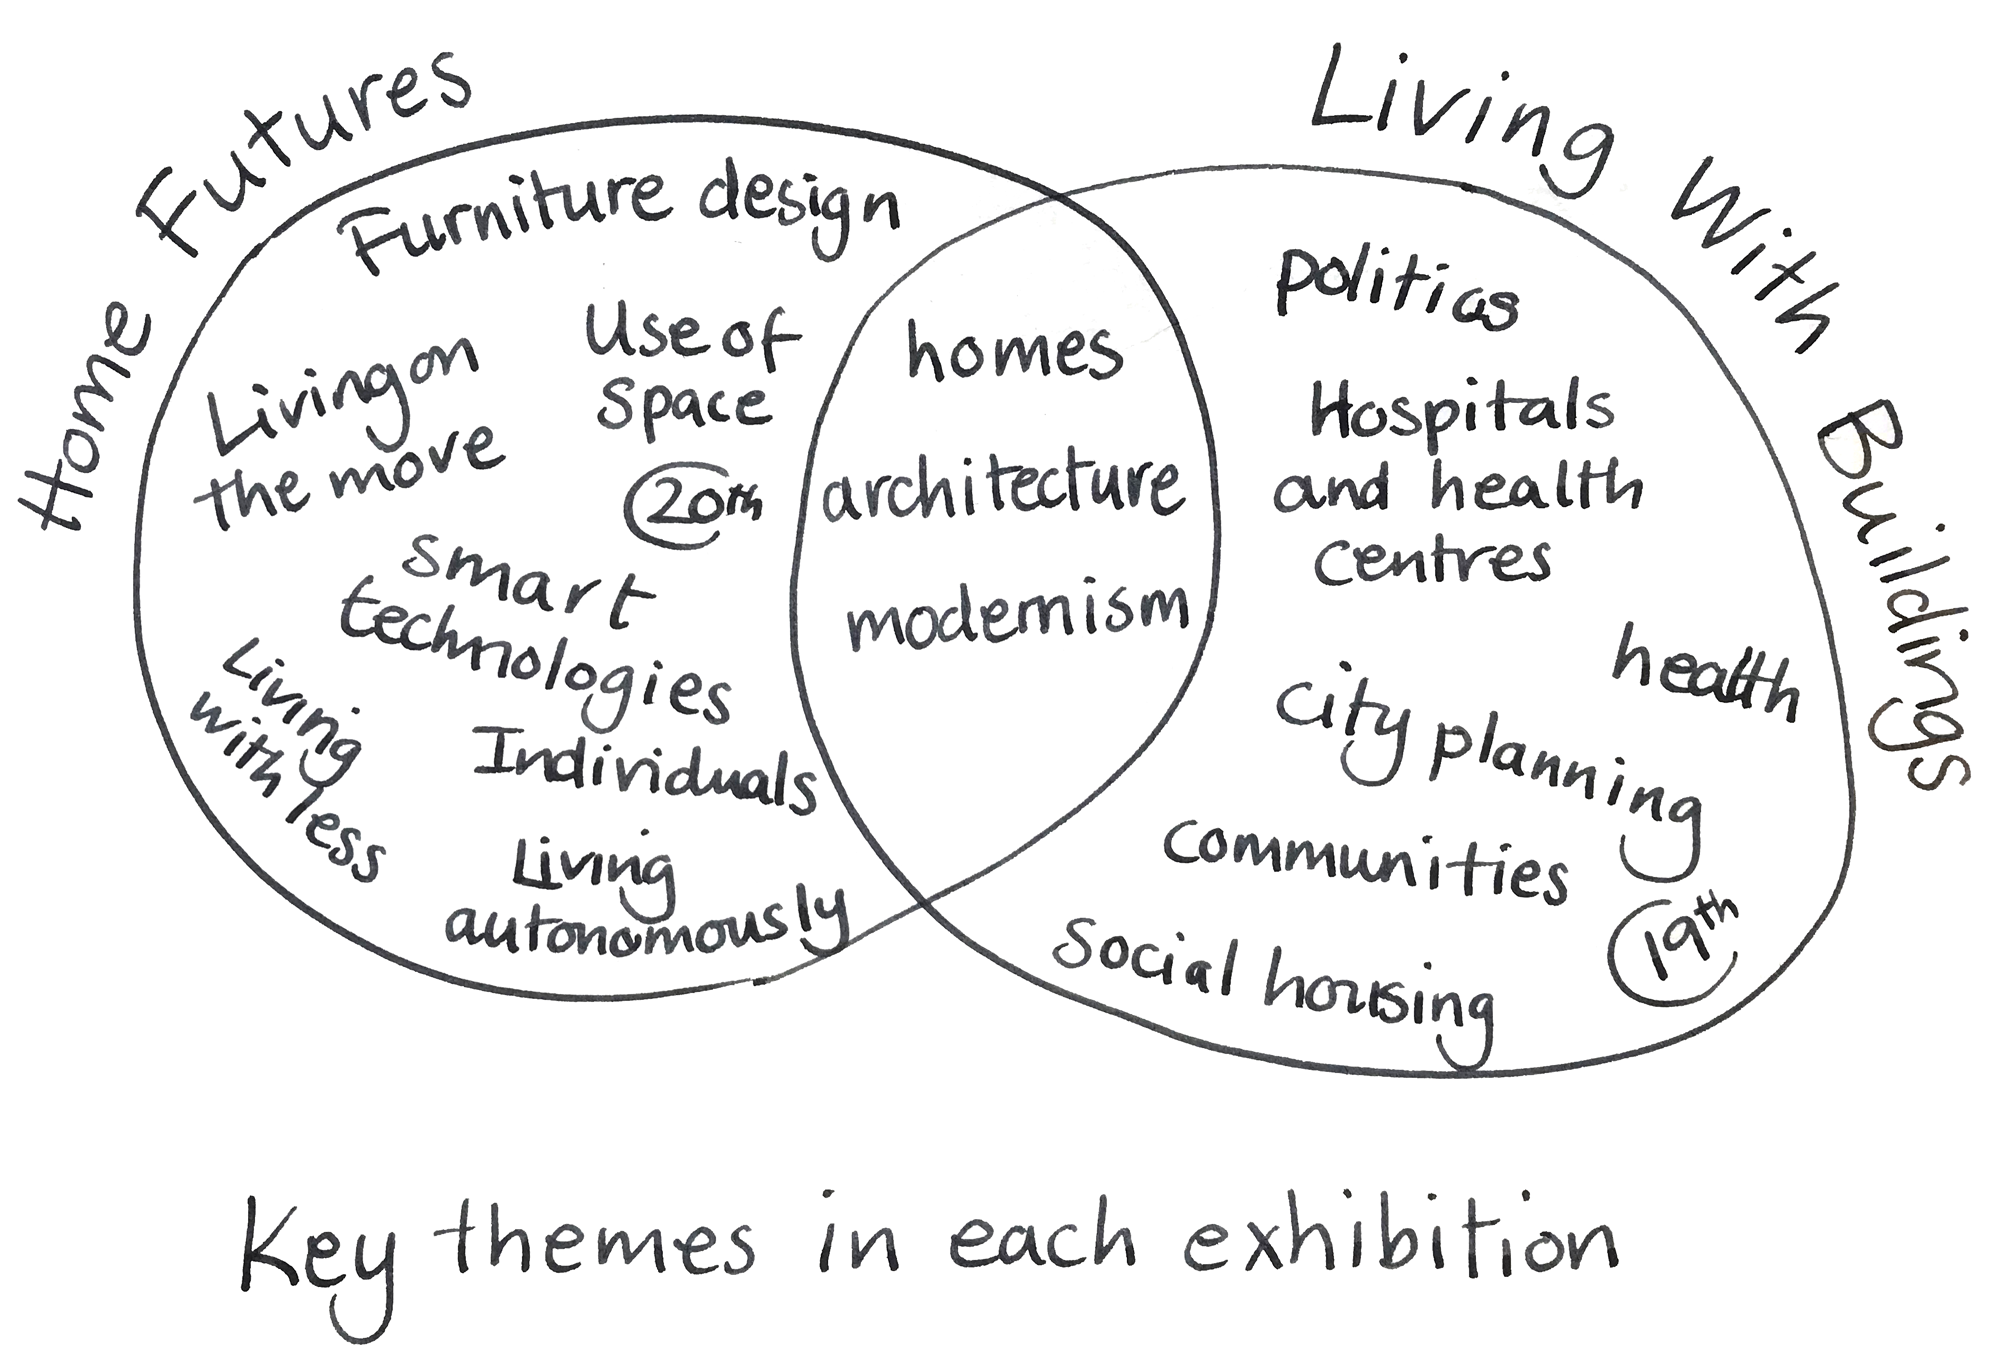 Home Futures & Living with Buildings